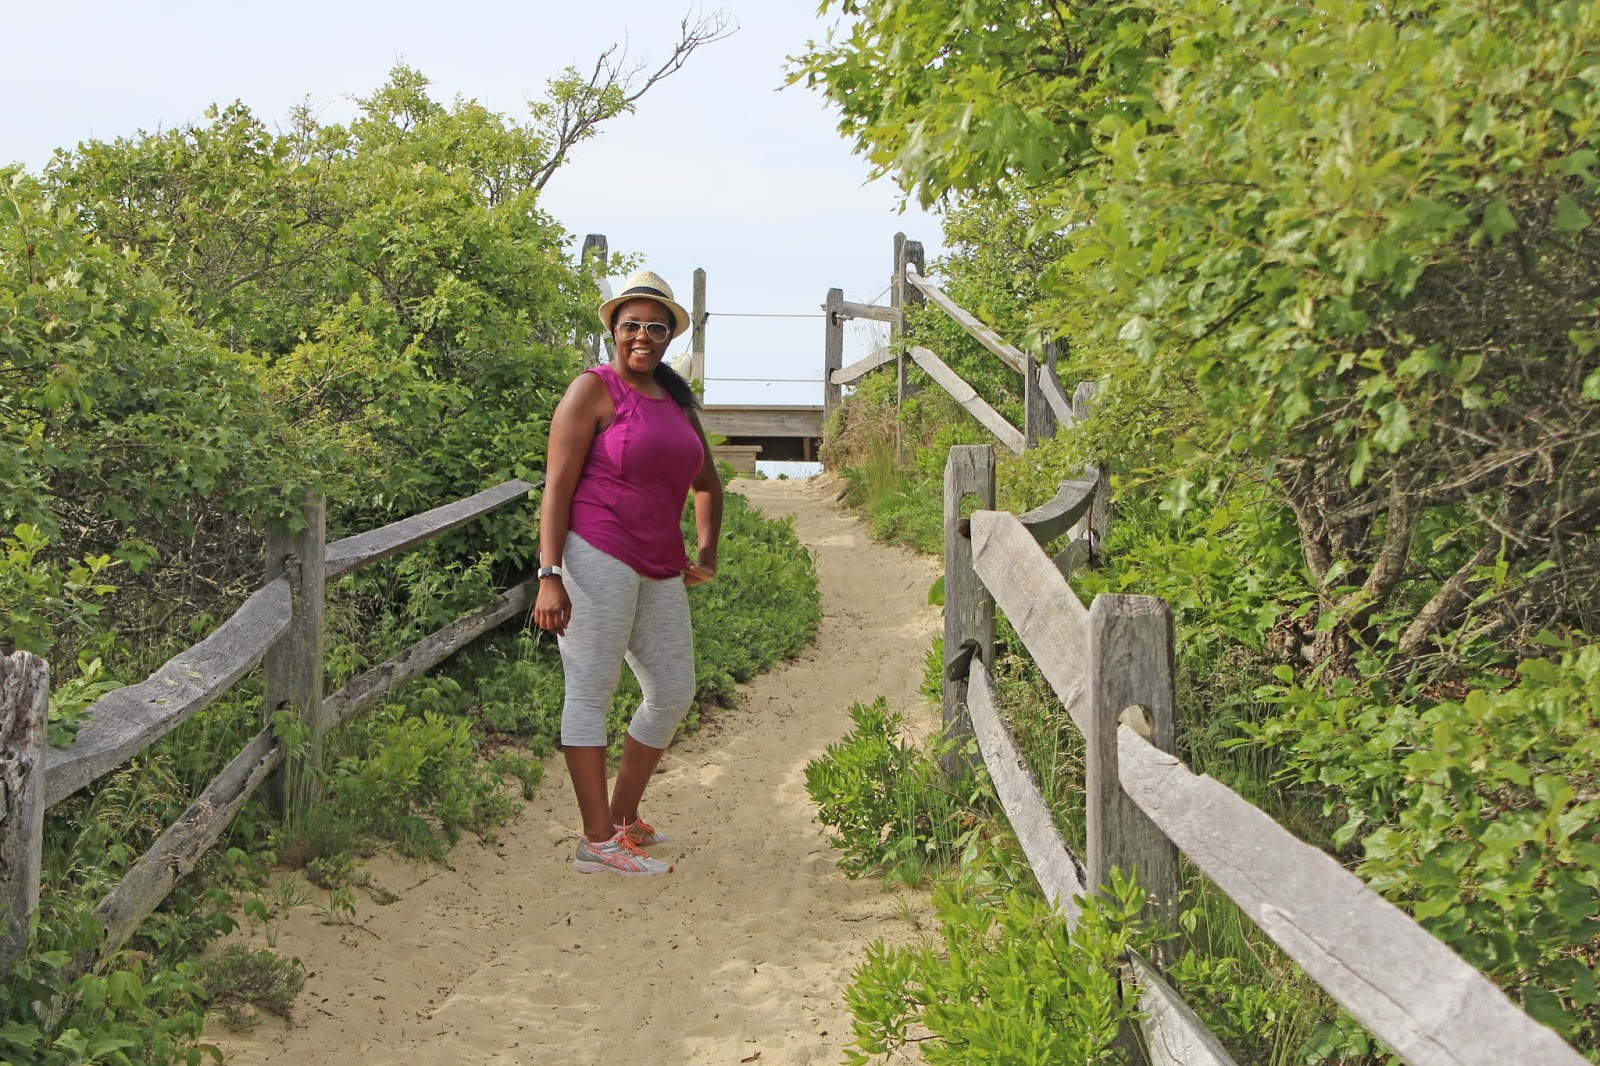 hiking to a secluded beach 3